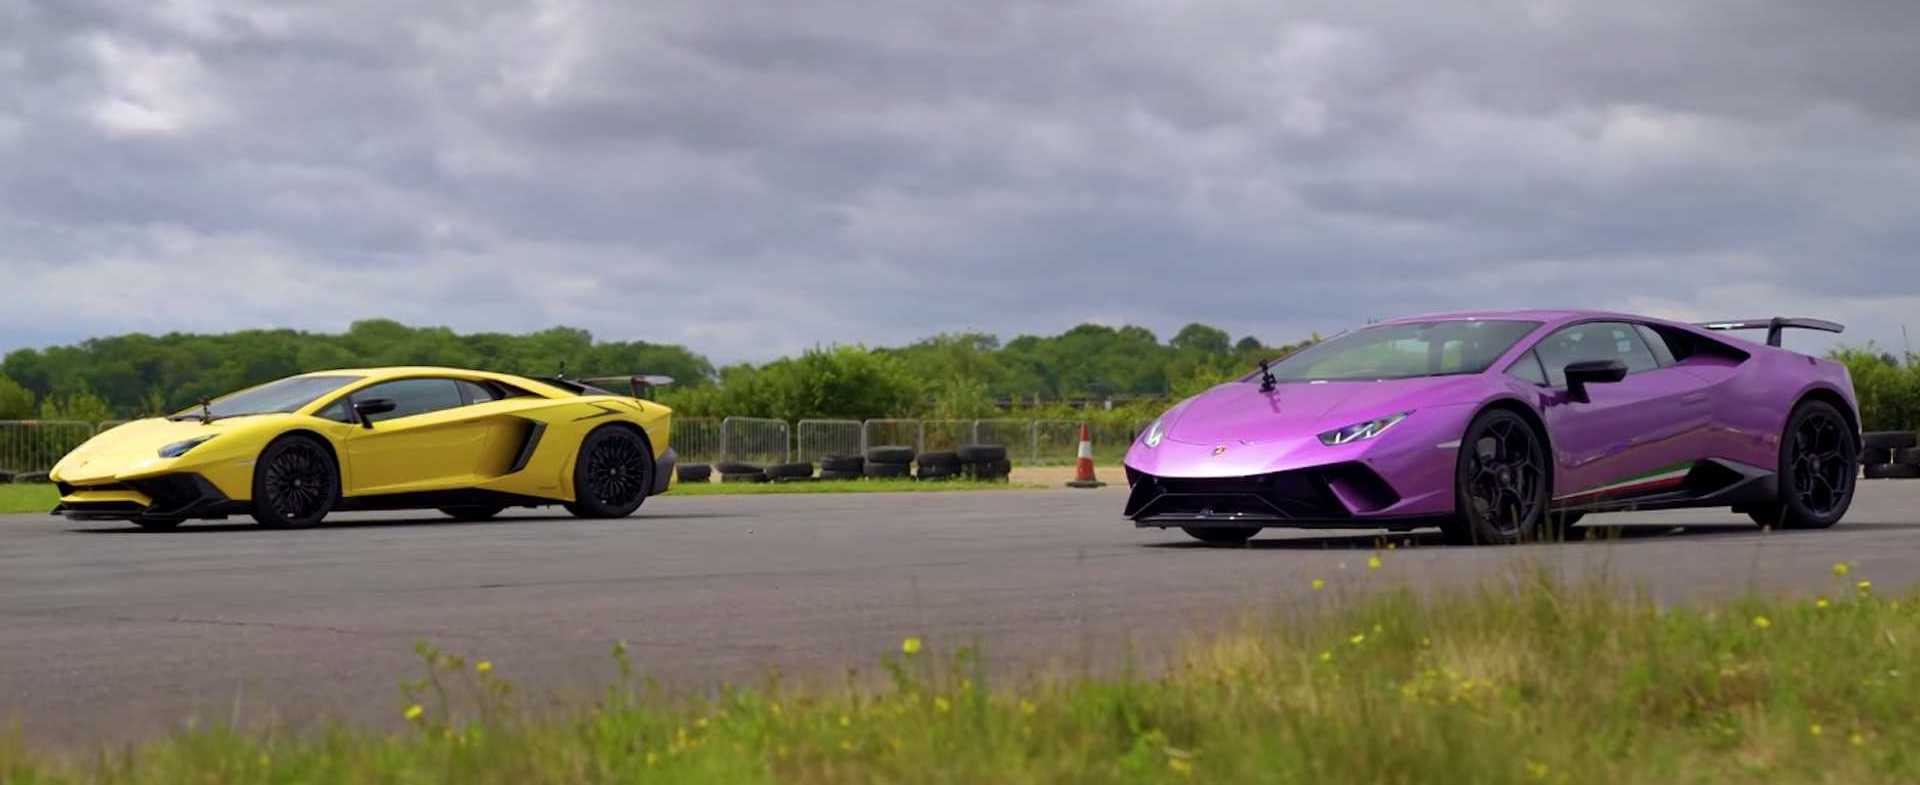 Aventador SV Drag Races Huracan Performante, Lamborghini Wins